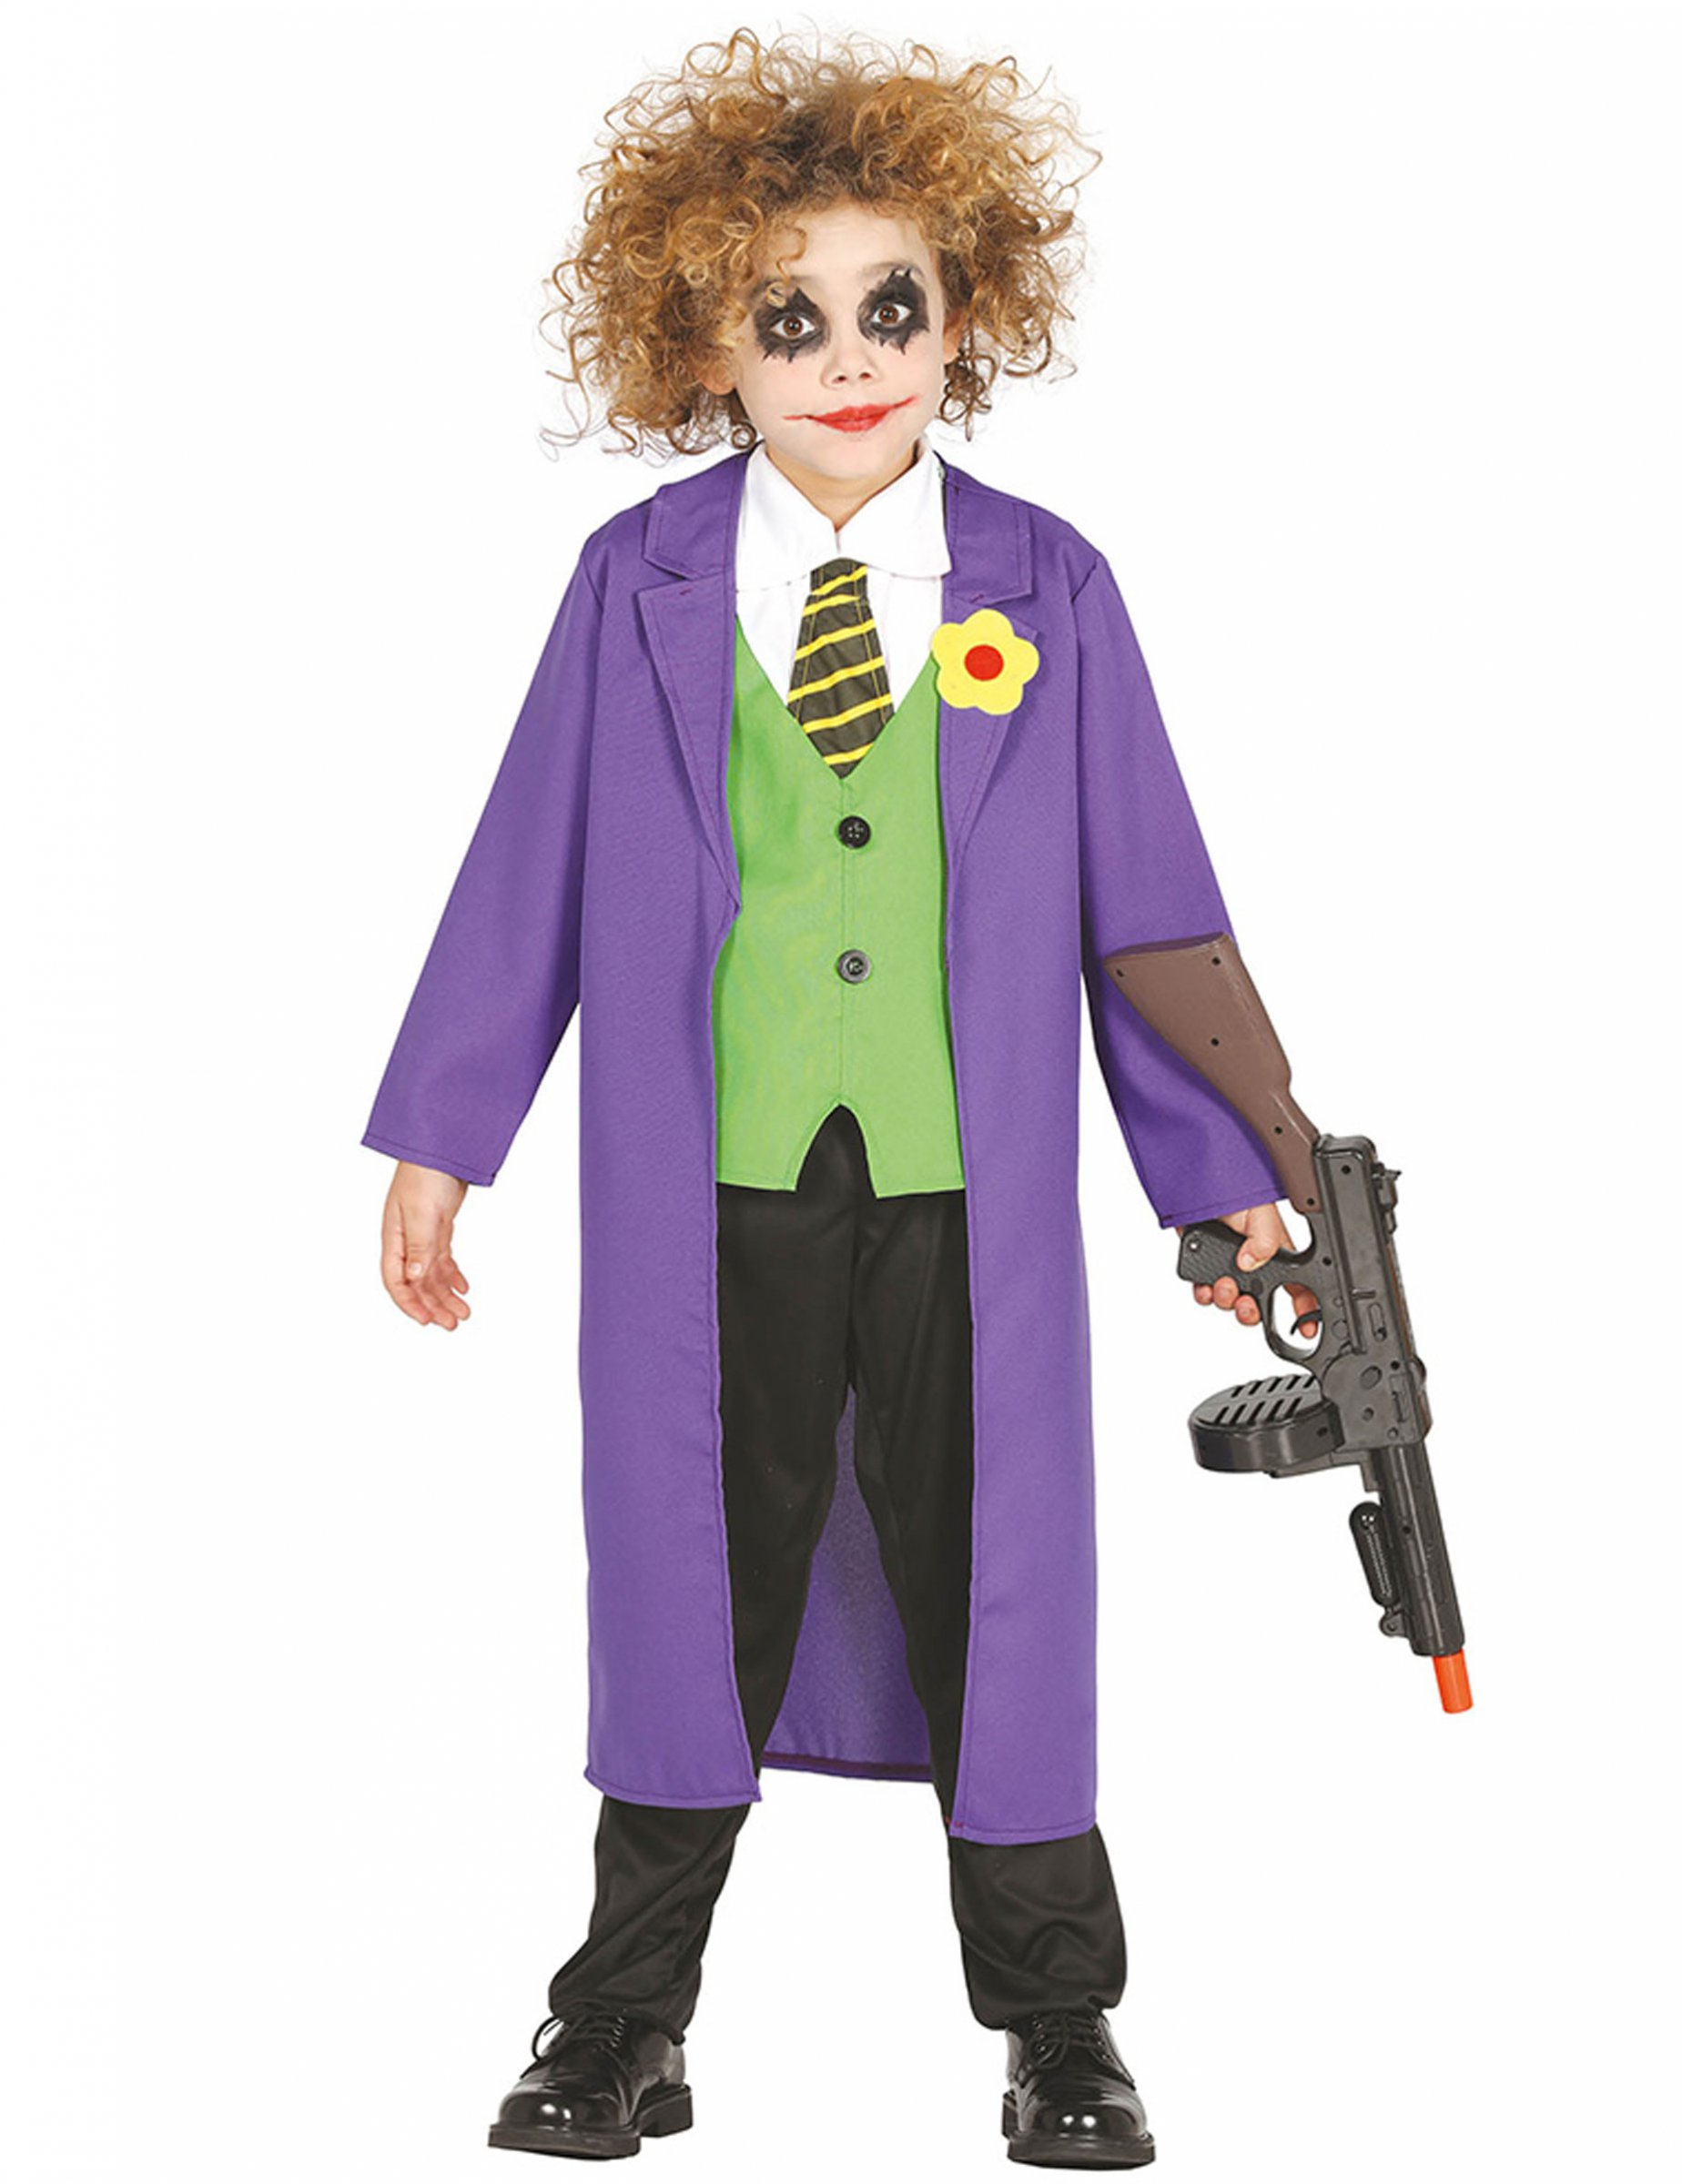 joker kostum fur kinder clown kinderkostum bunt